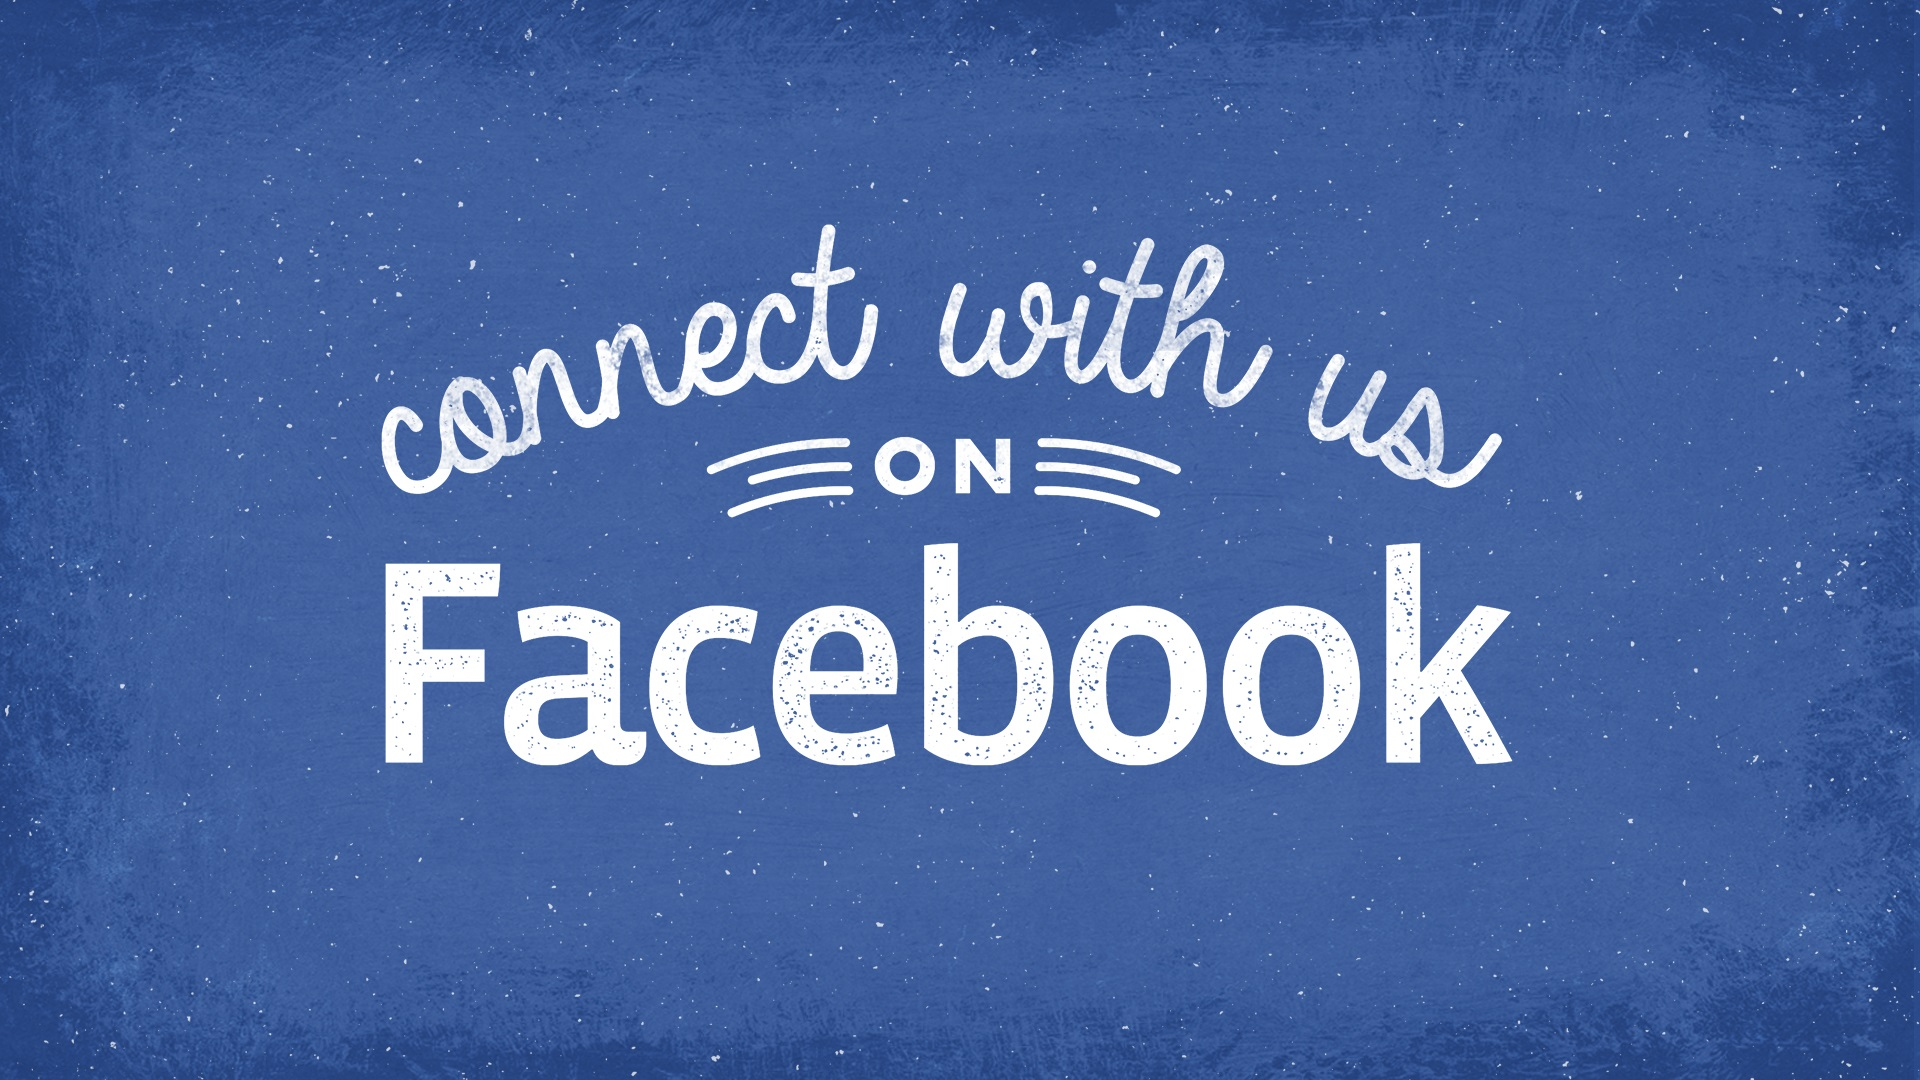 connect_with_us_on_facebook-title-1-Wide-16x9